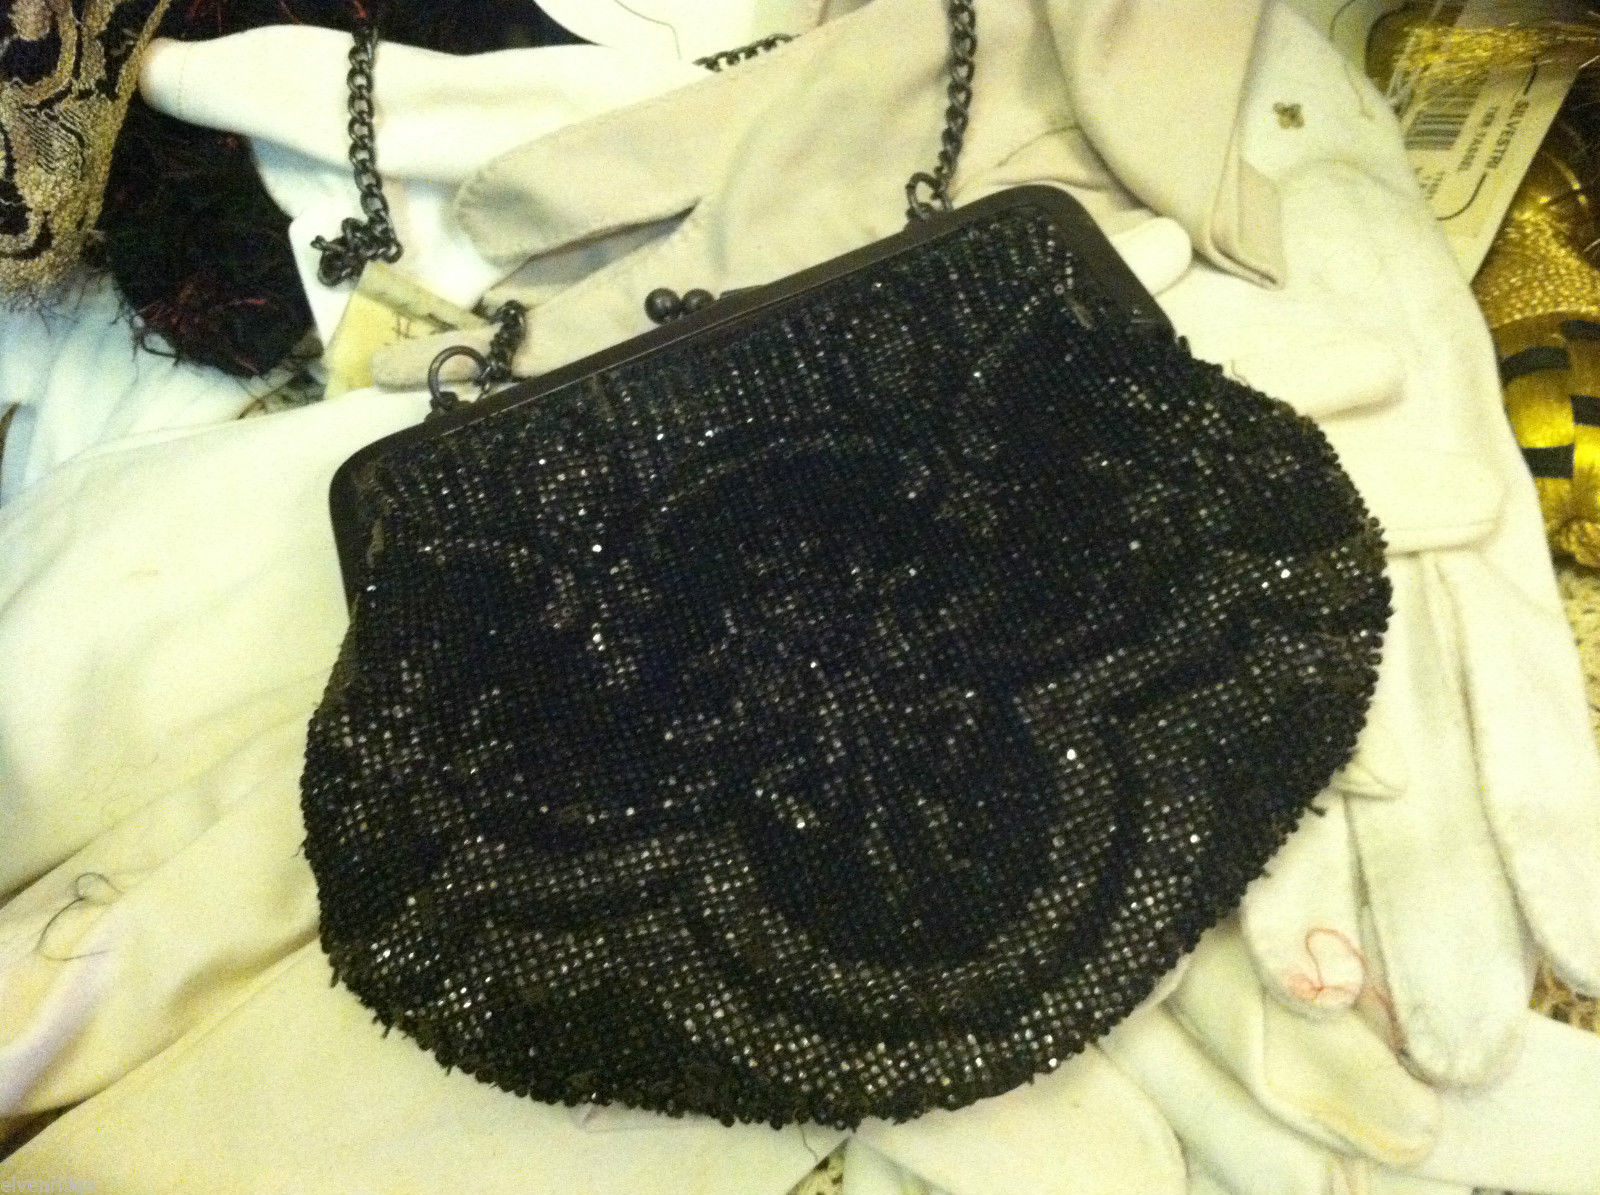 Vintage black beaded purse with black chain and clasp